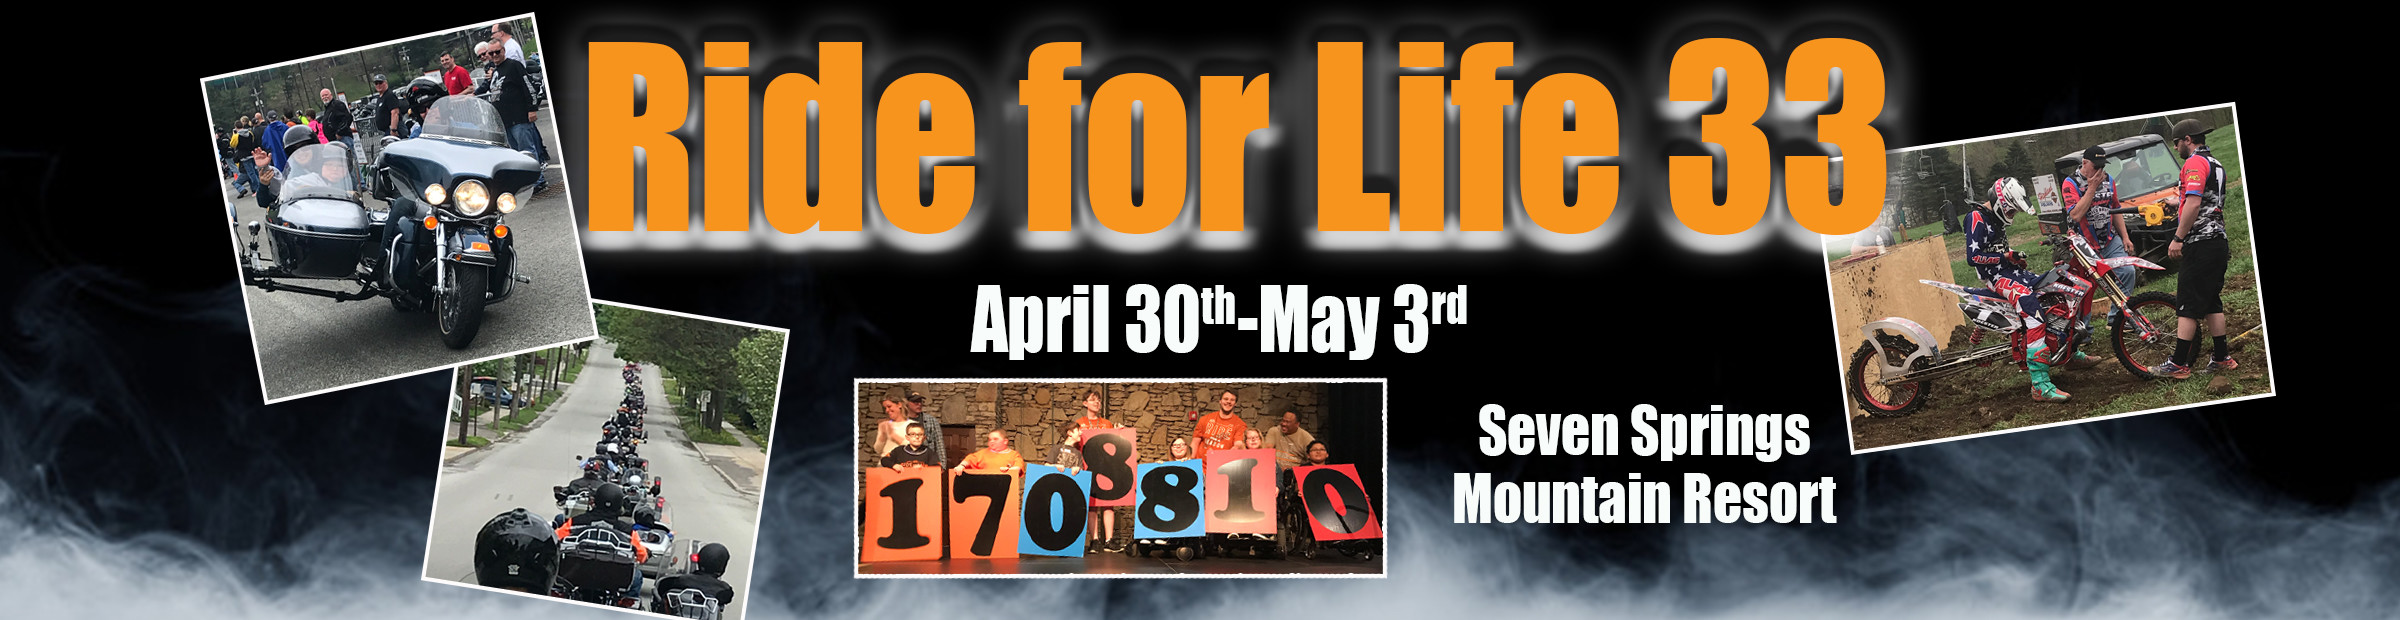 Ride for Life 33